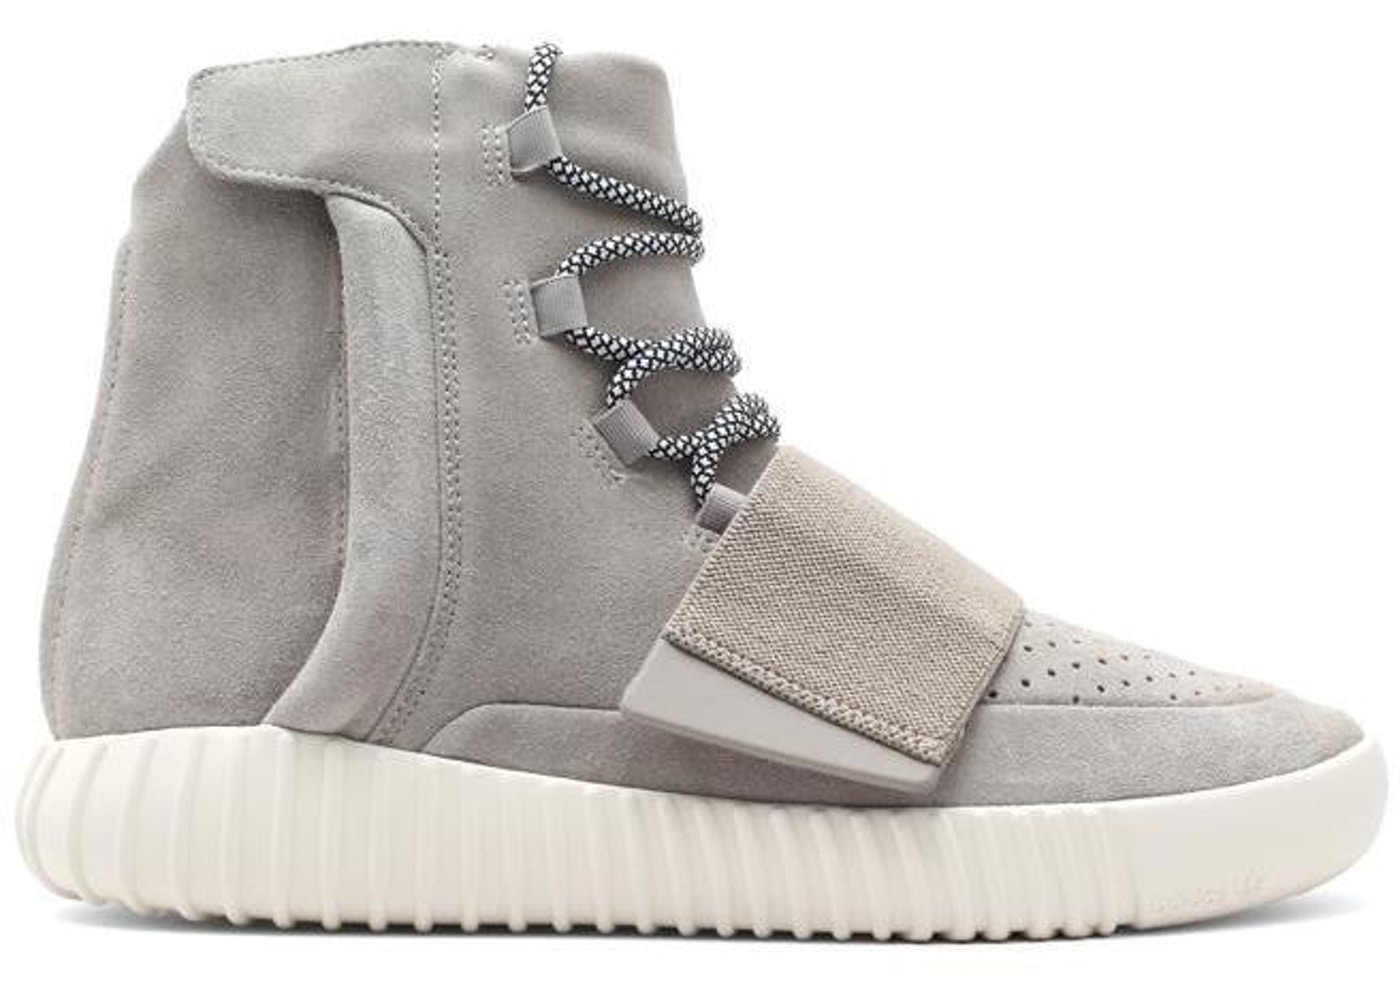 a704fdda0ed3f5 adidas Yeezy Boost 750 OG Light Brown - B35309